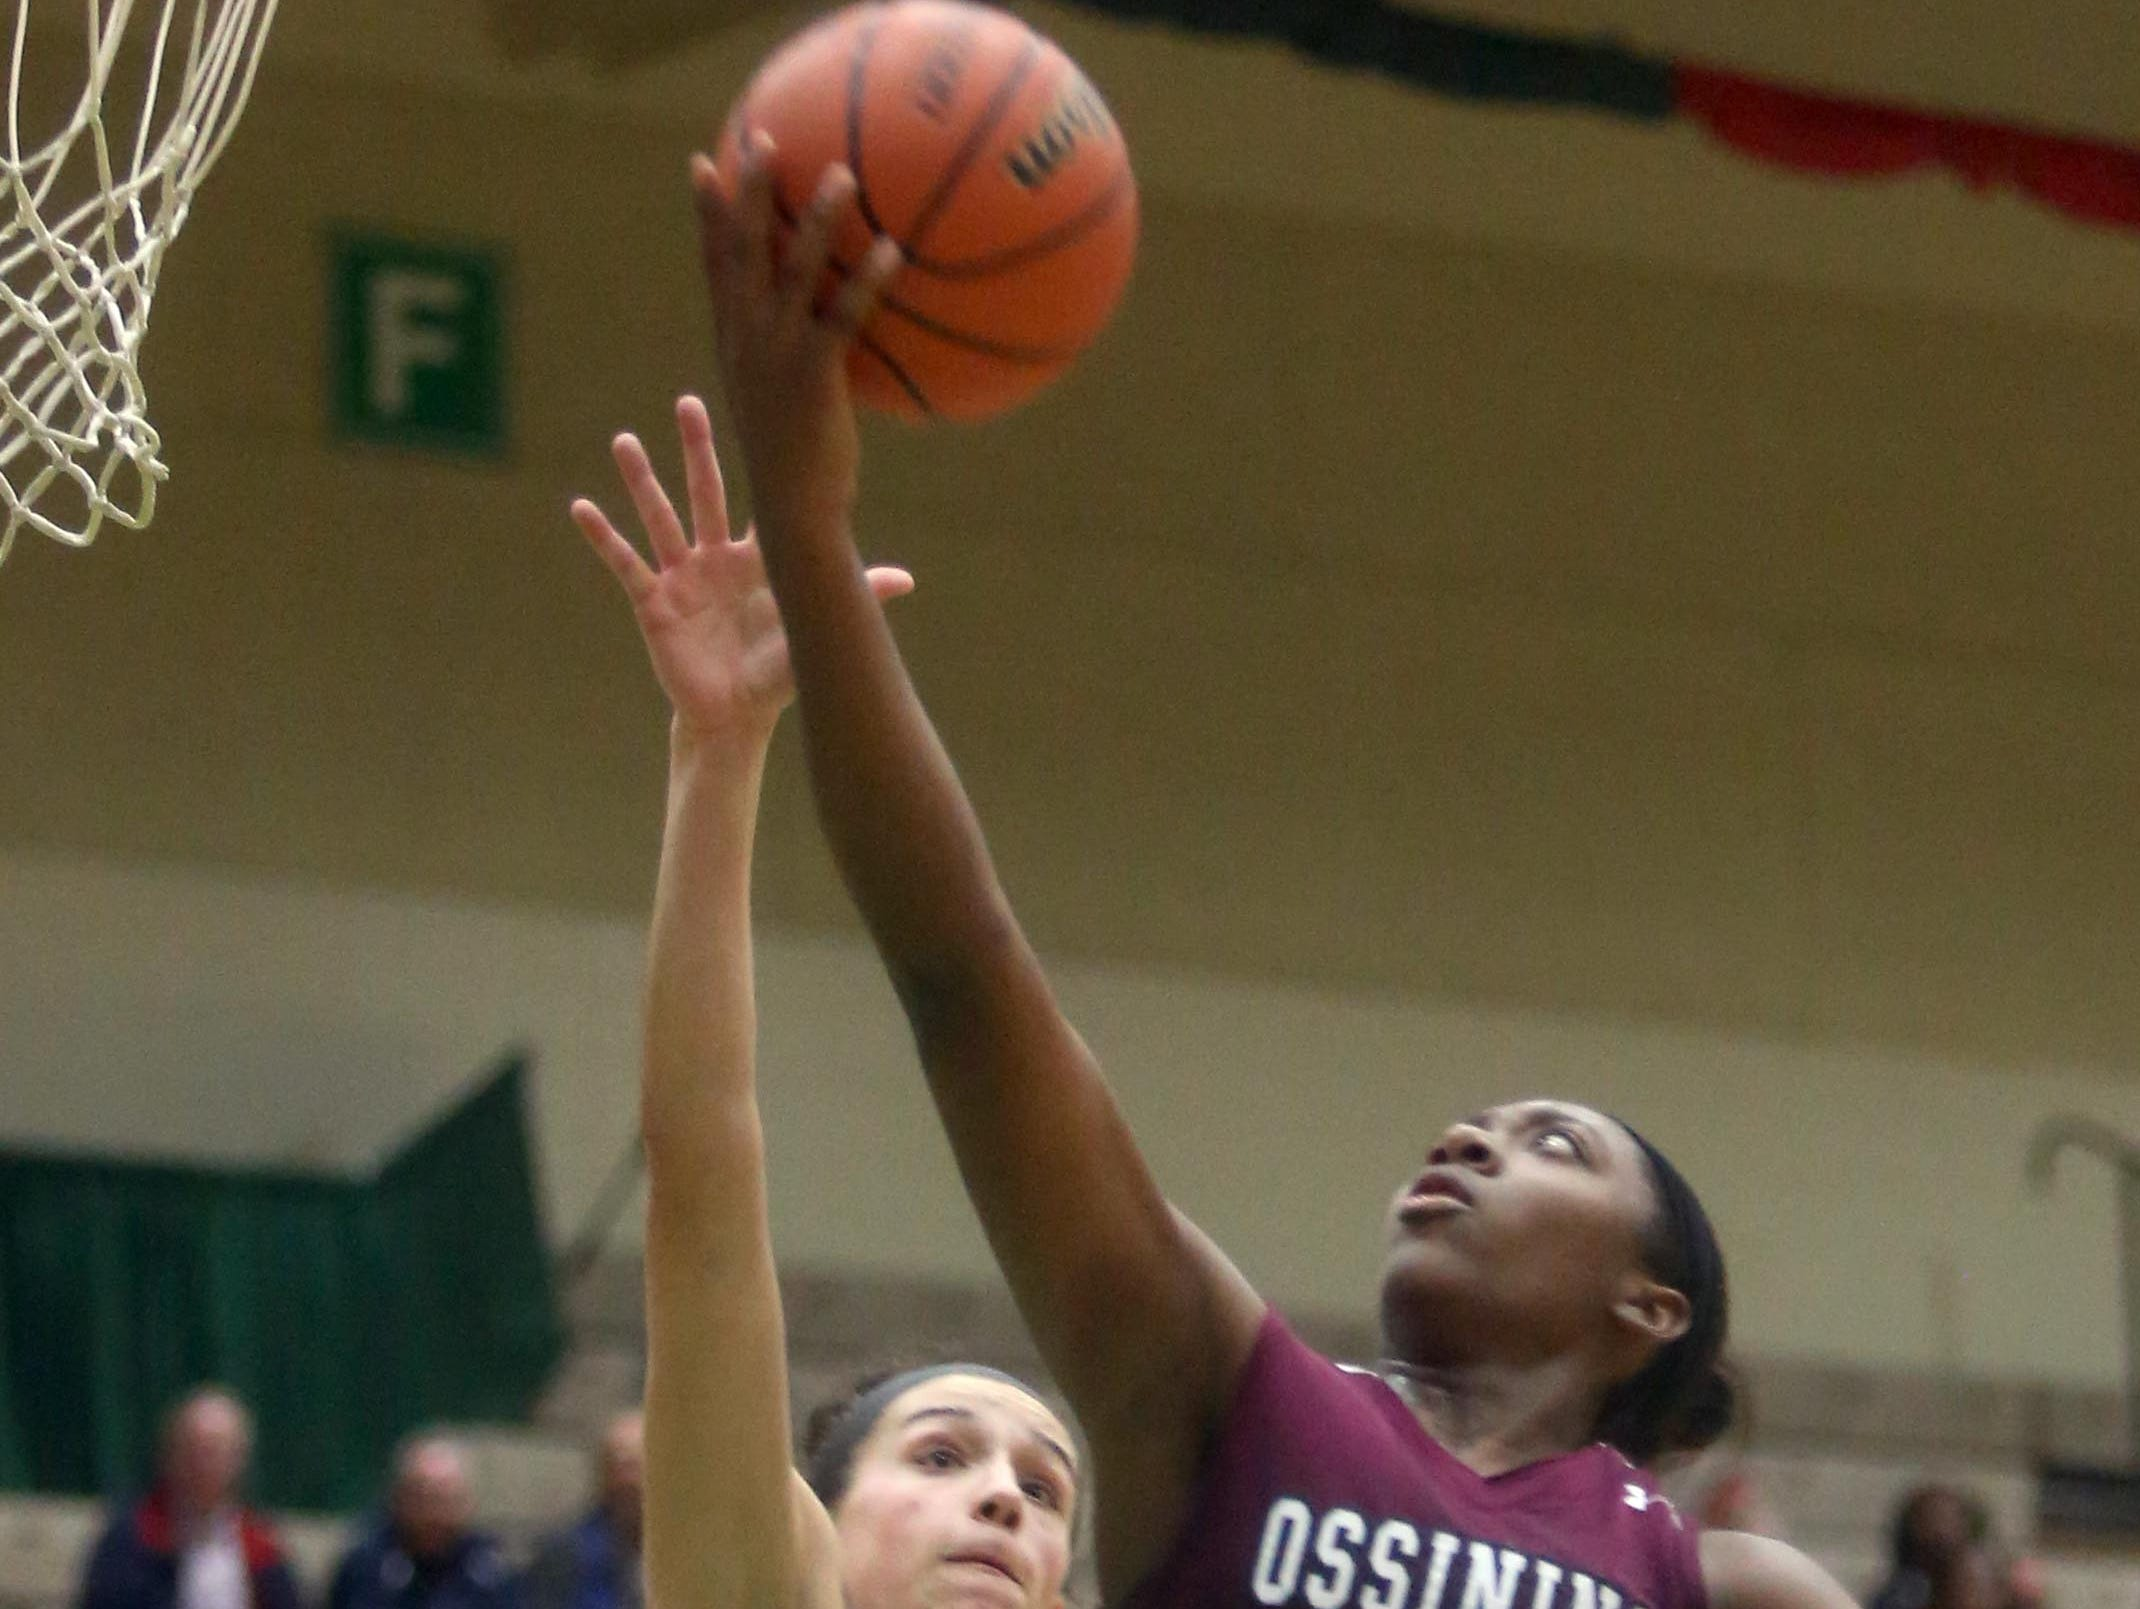 Ossining's Shadeen Samuels led all scorers with 32 points as Ossining defeated Cormack 72-55 in a New York State Class AA semifinal game at Hudson Valley Community College in Troy March 11, 2016.